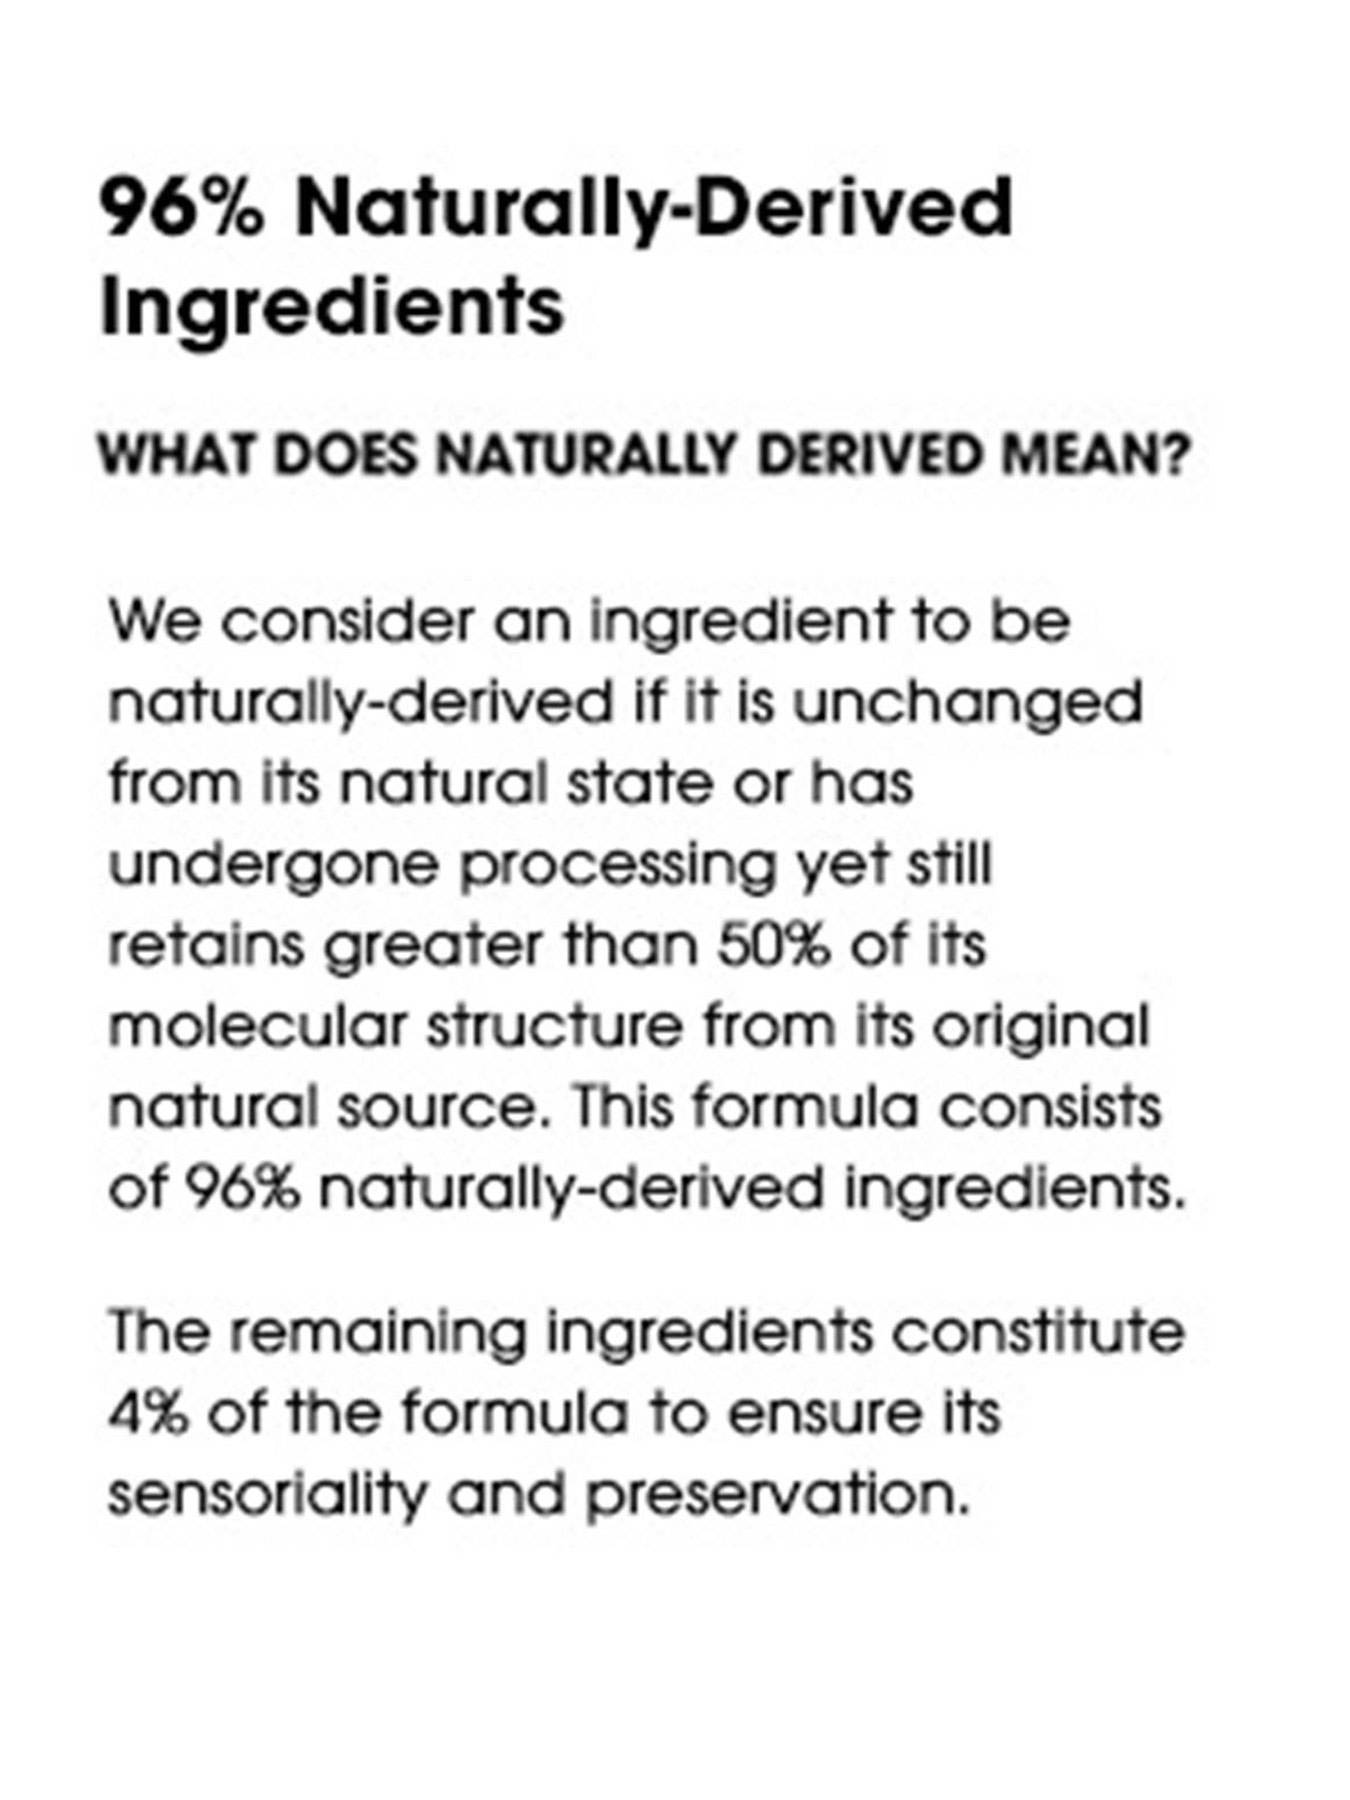 96% Naturally-Derived Ingredients. What does naturally derived mean? We consider an ingredient to be naturally-derived if it is unchanged from its natural state or has undergone processing yet still retains greater than 50% of its molecular structure from its original natural source. This formula consists of 96% naturally-derived ingredients. The remaining ingredients constitute 4% of the formula to ensure its sensoriality and preservation.